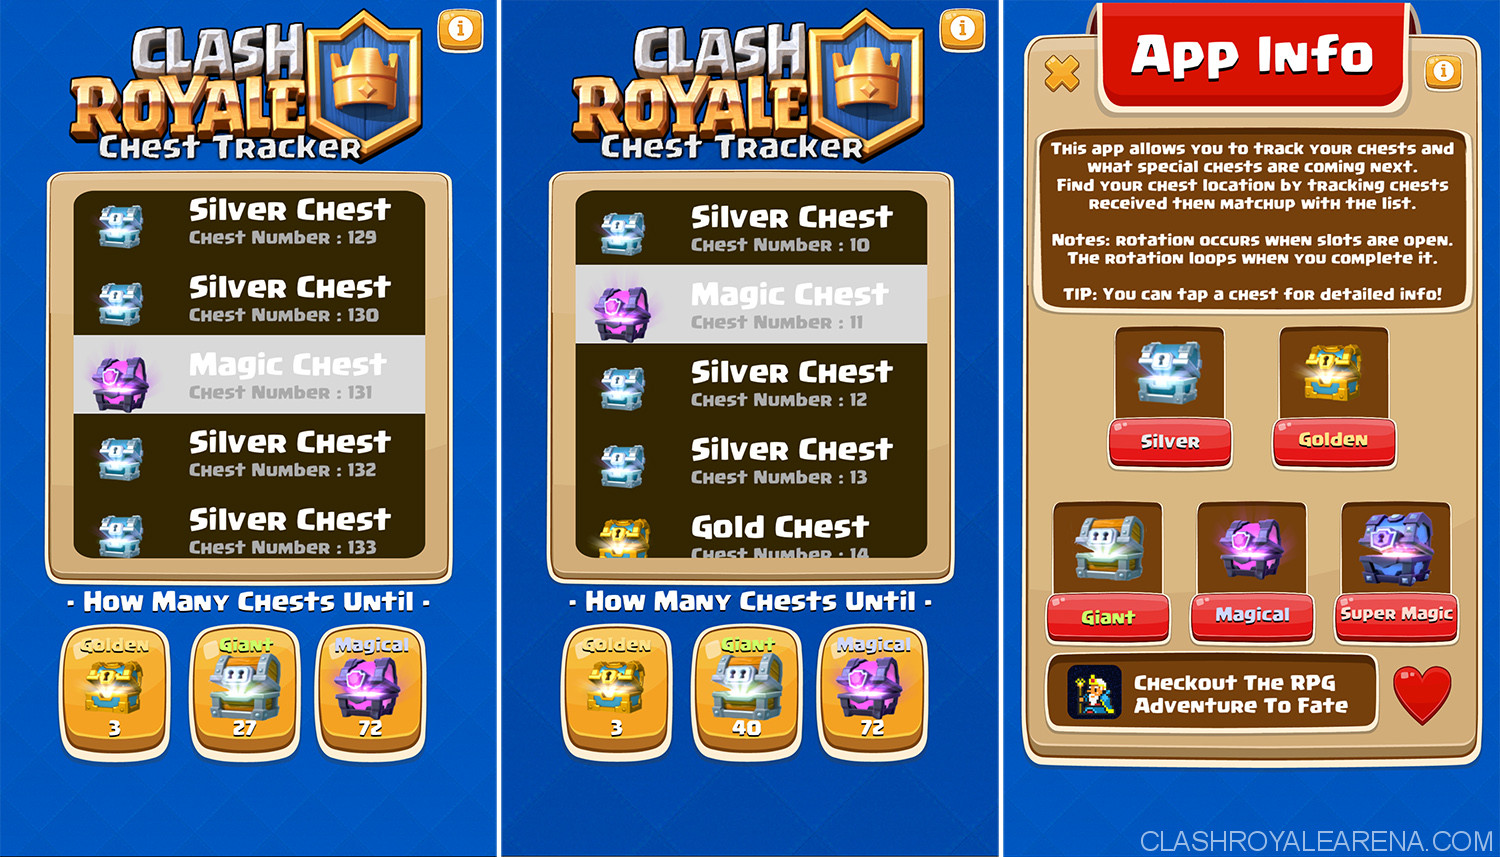 clash royale chest tracker 5